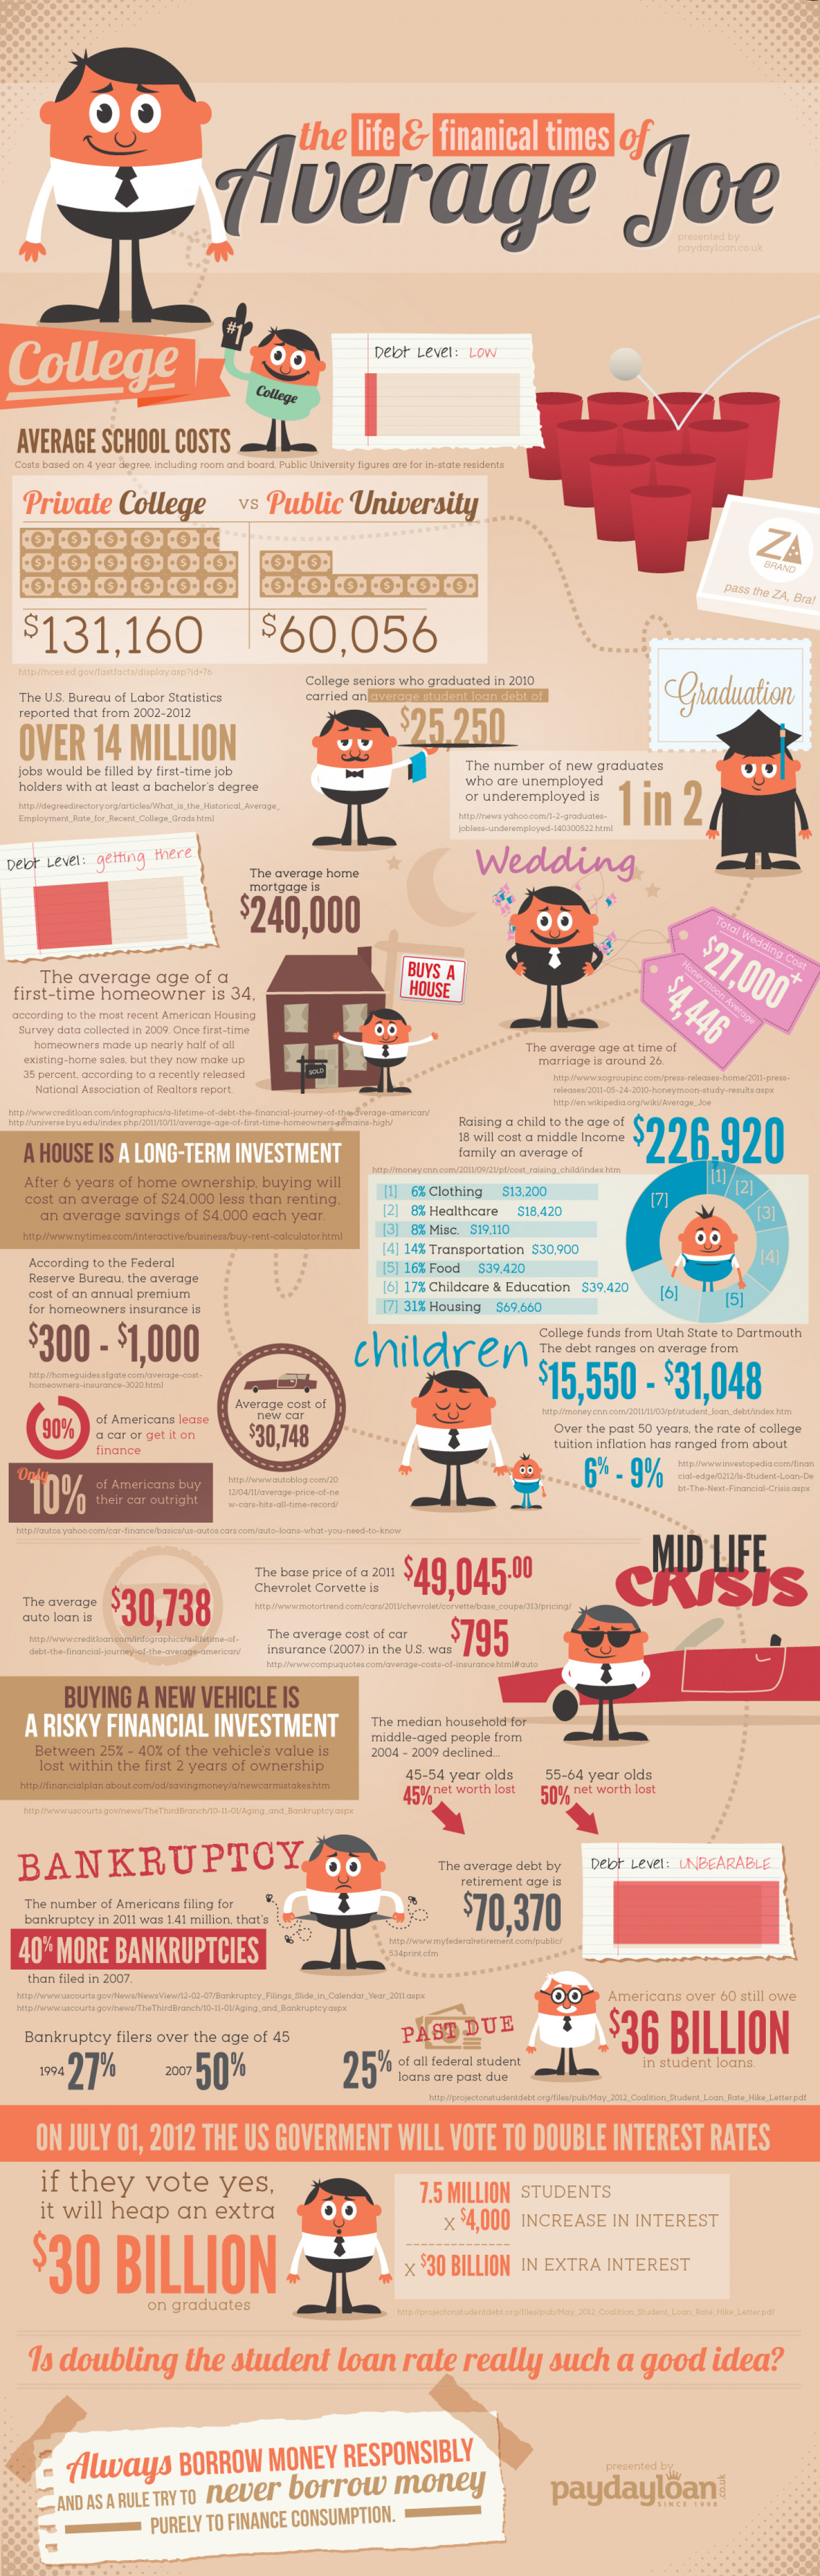 The Life and Financial Times of Average Joe Infographic